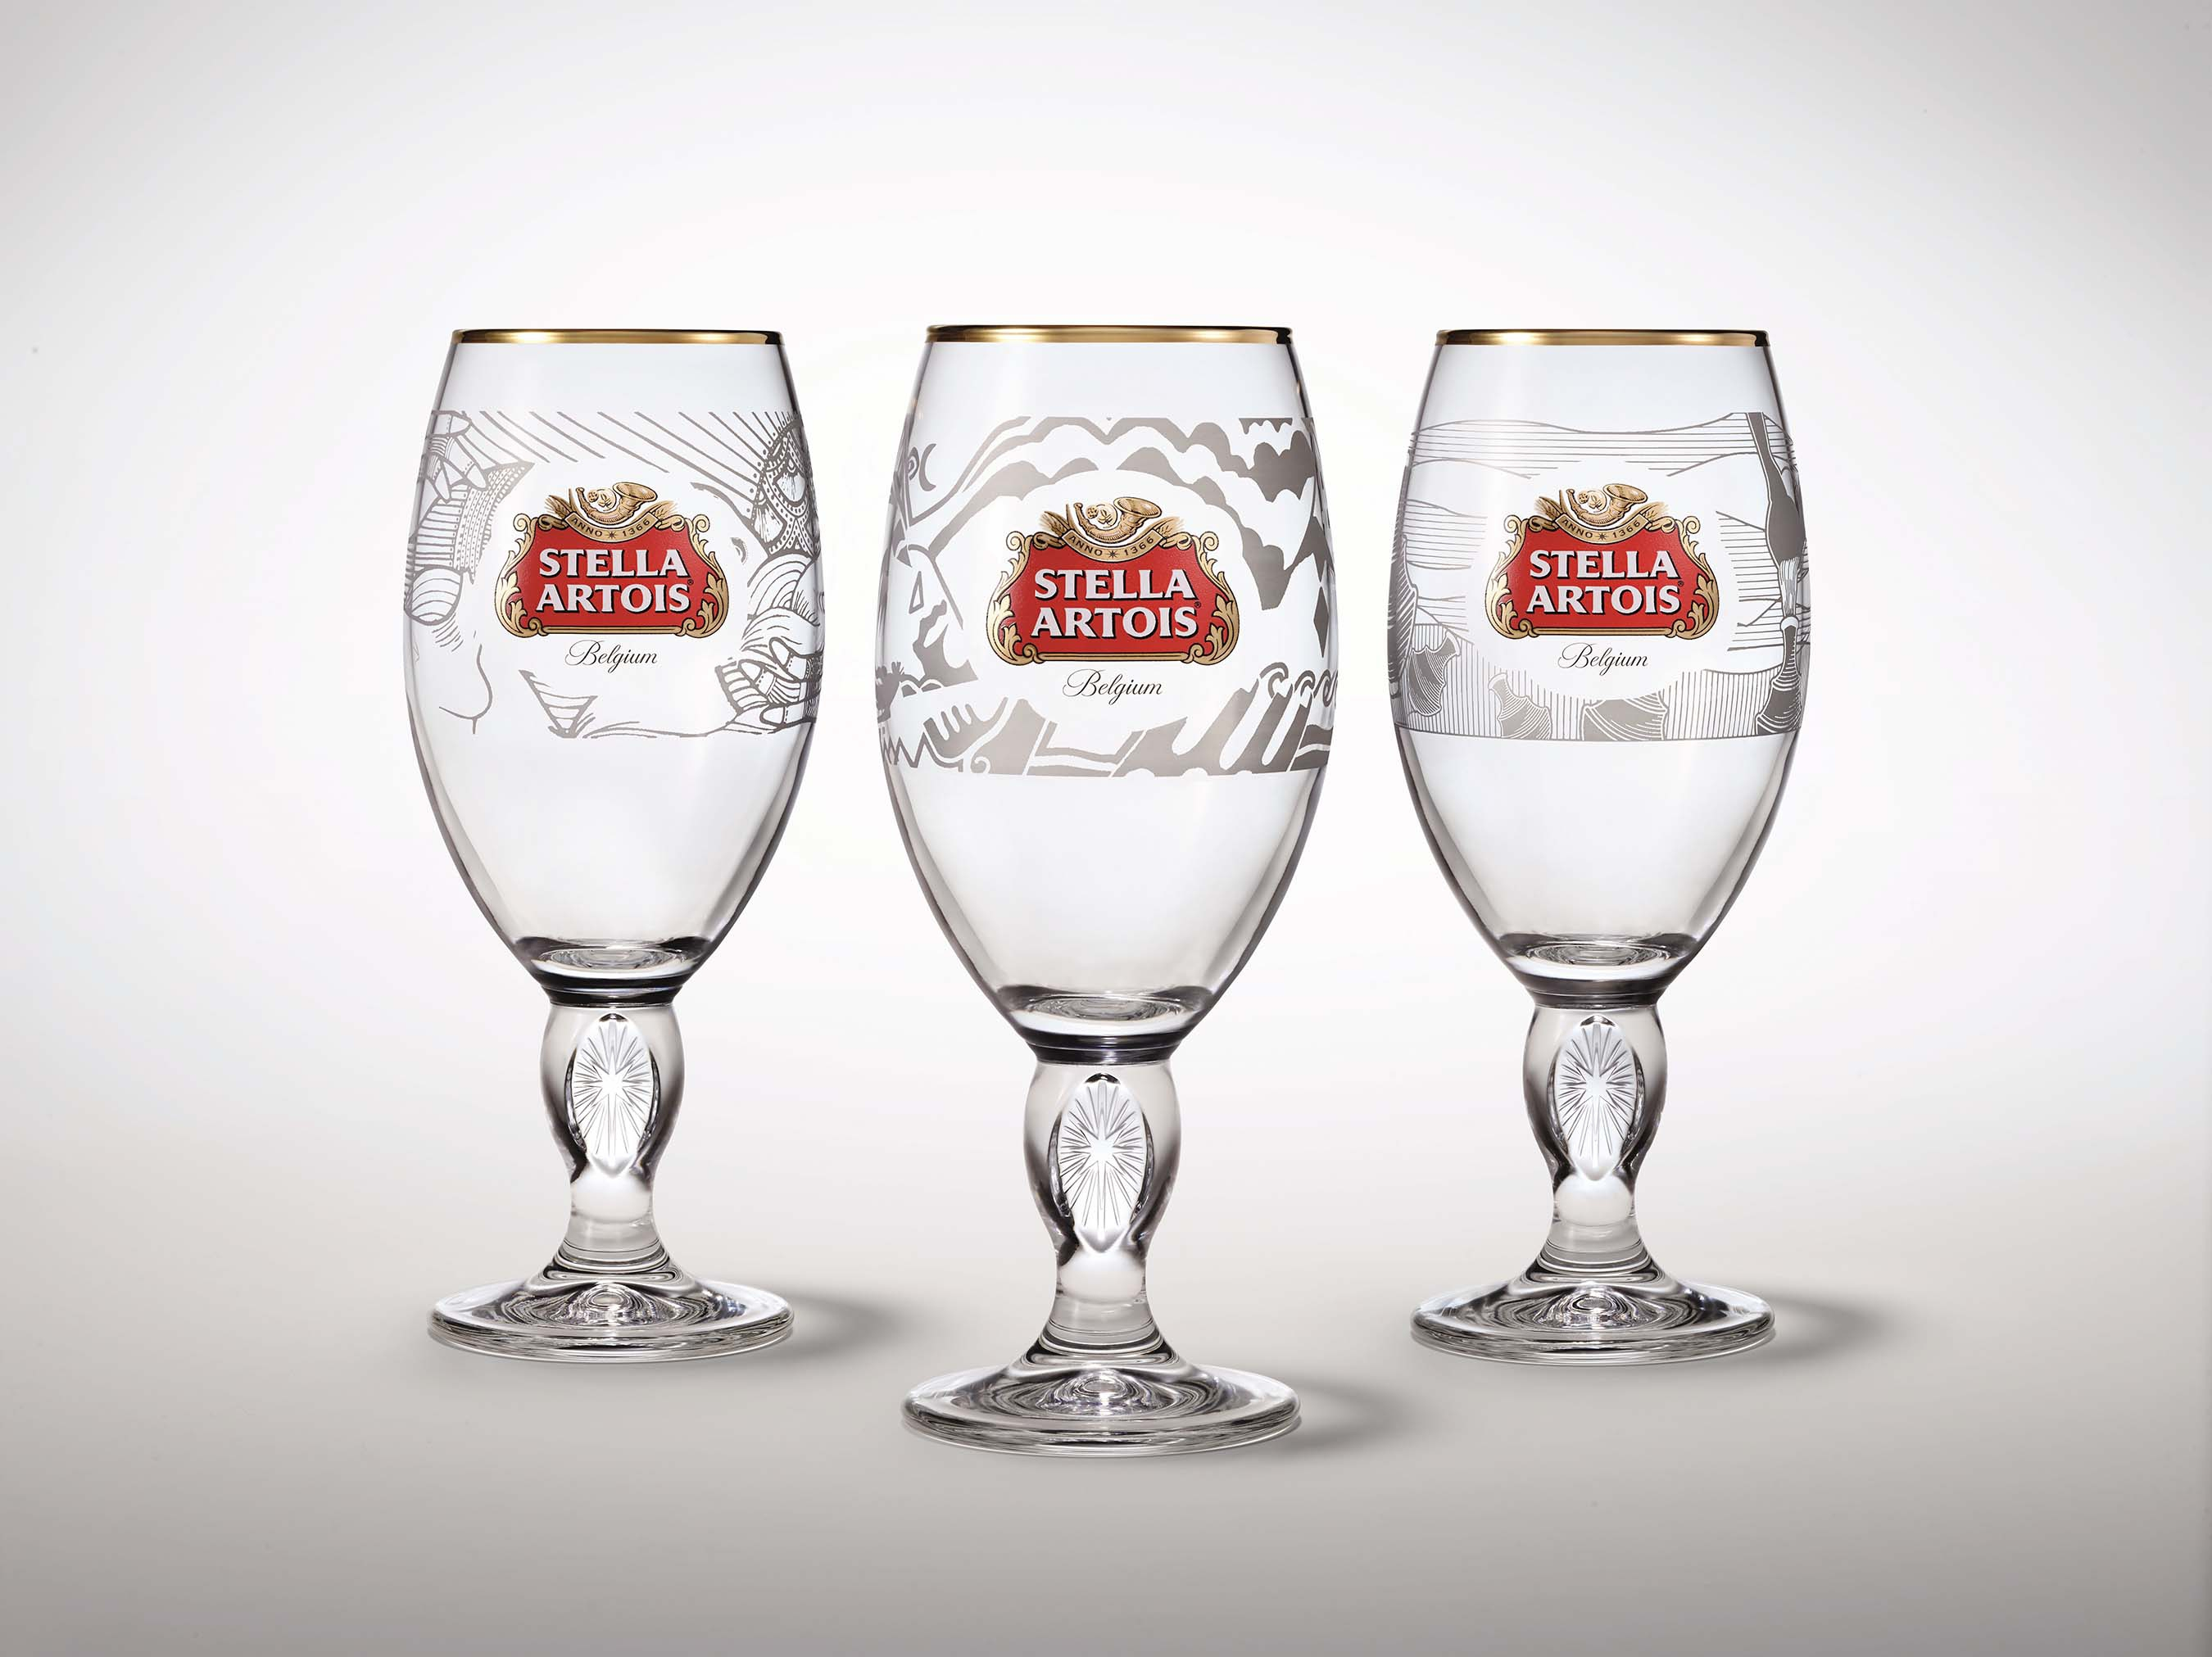 Stella Artois High Definition Wallpapers